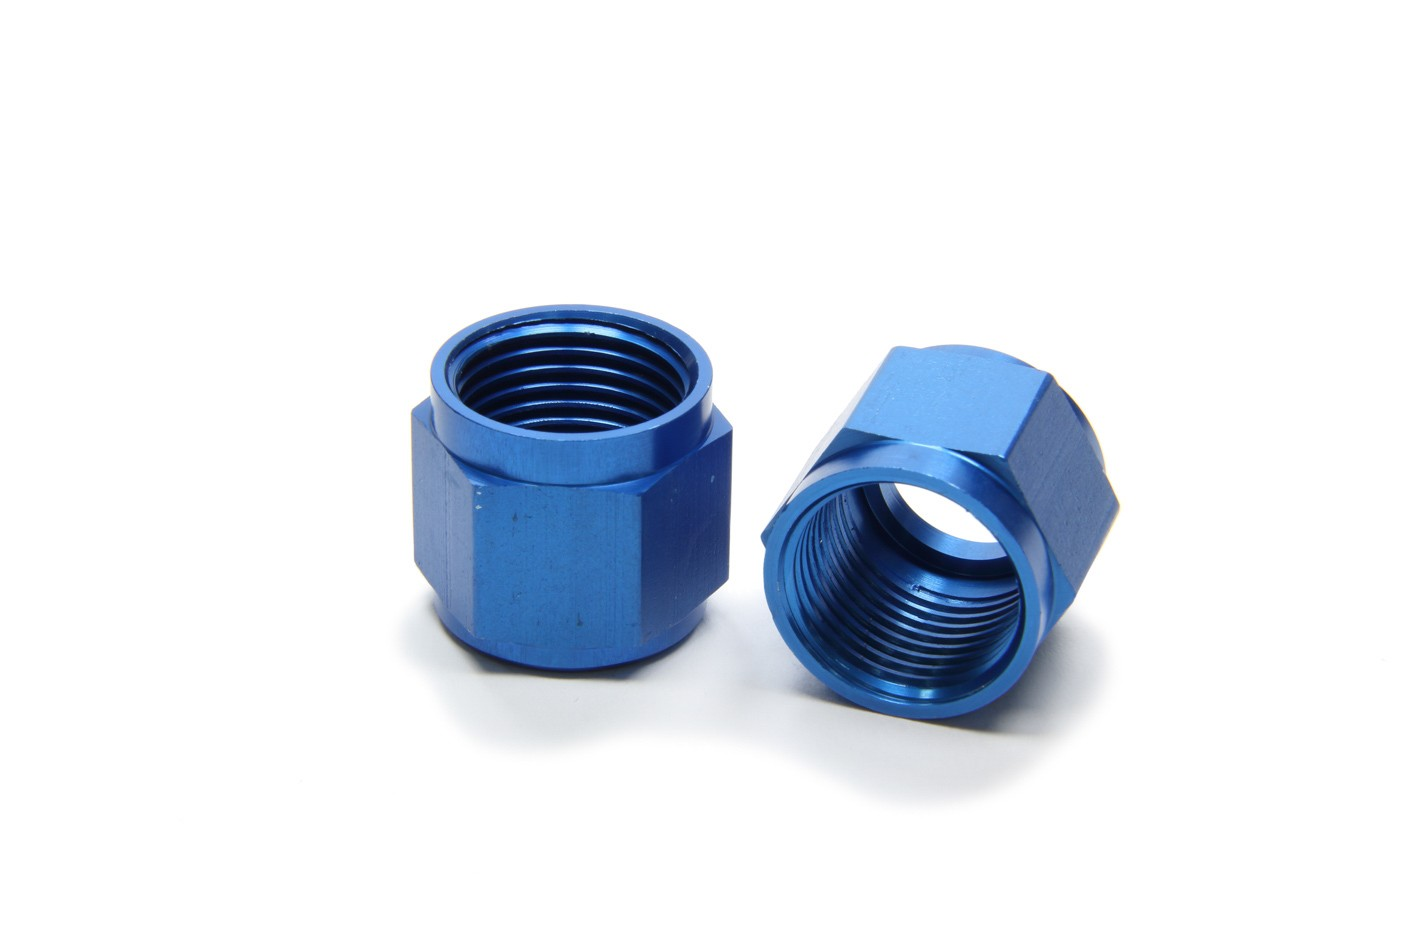 Aeroquip FCM3676 Fitting, Tube Nut, 8 AN, 1/2 in Tube, Aluminum, Blue Anodize, Pair